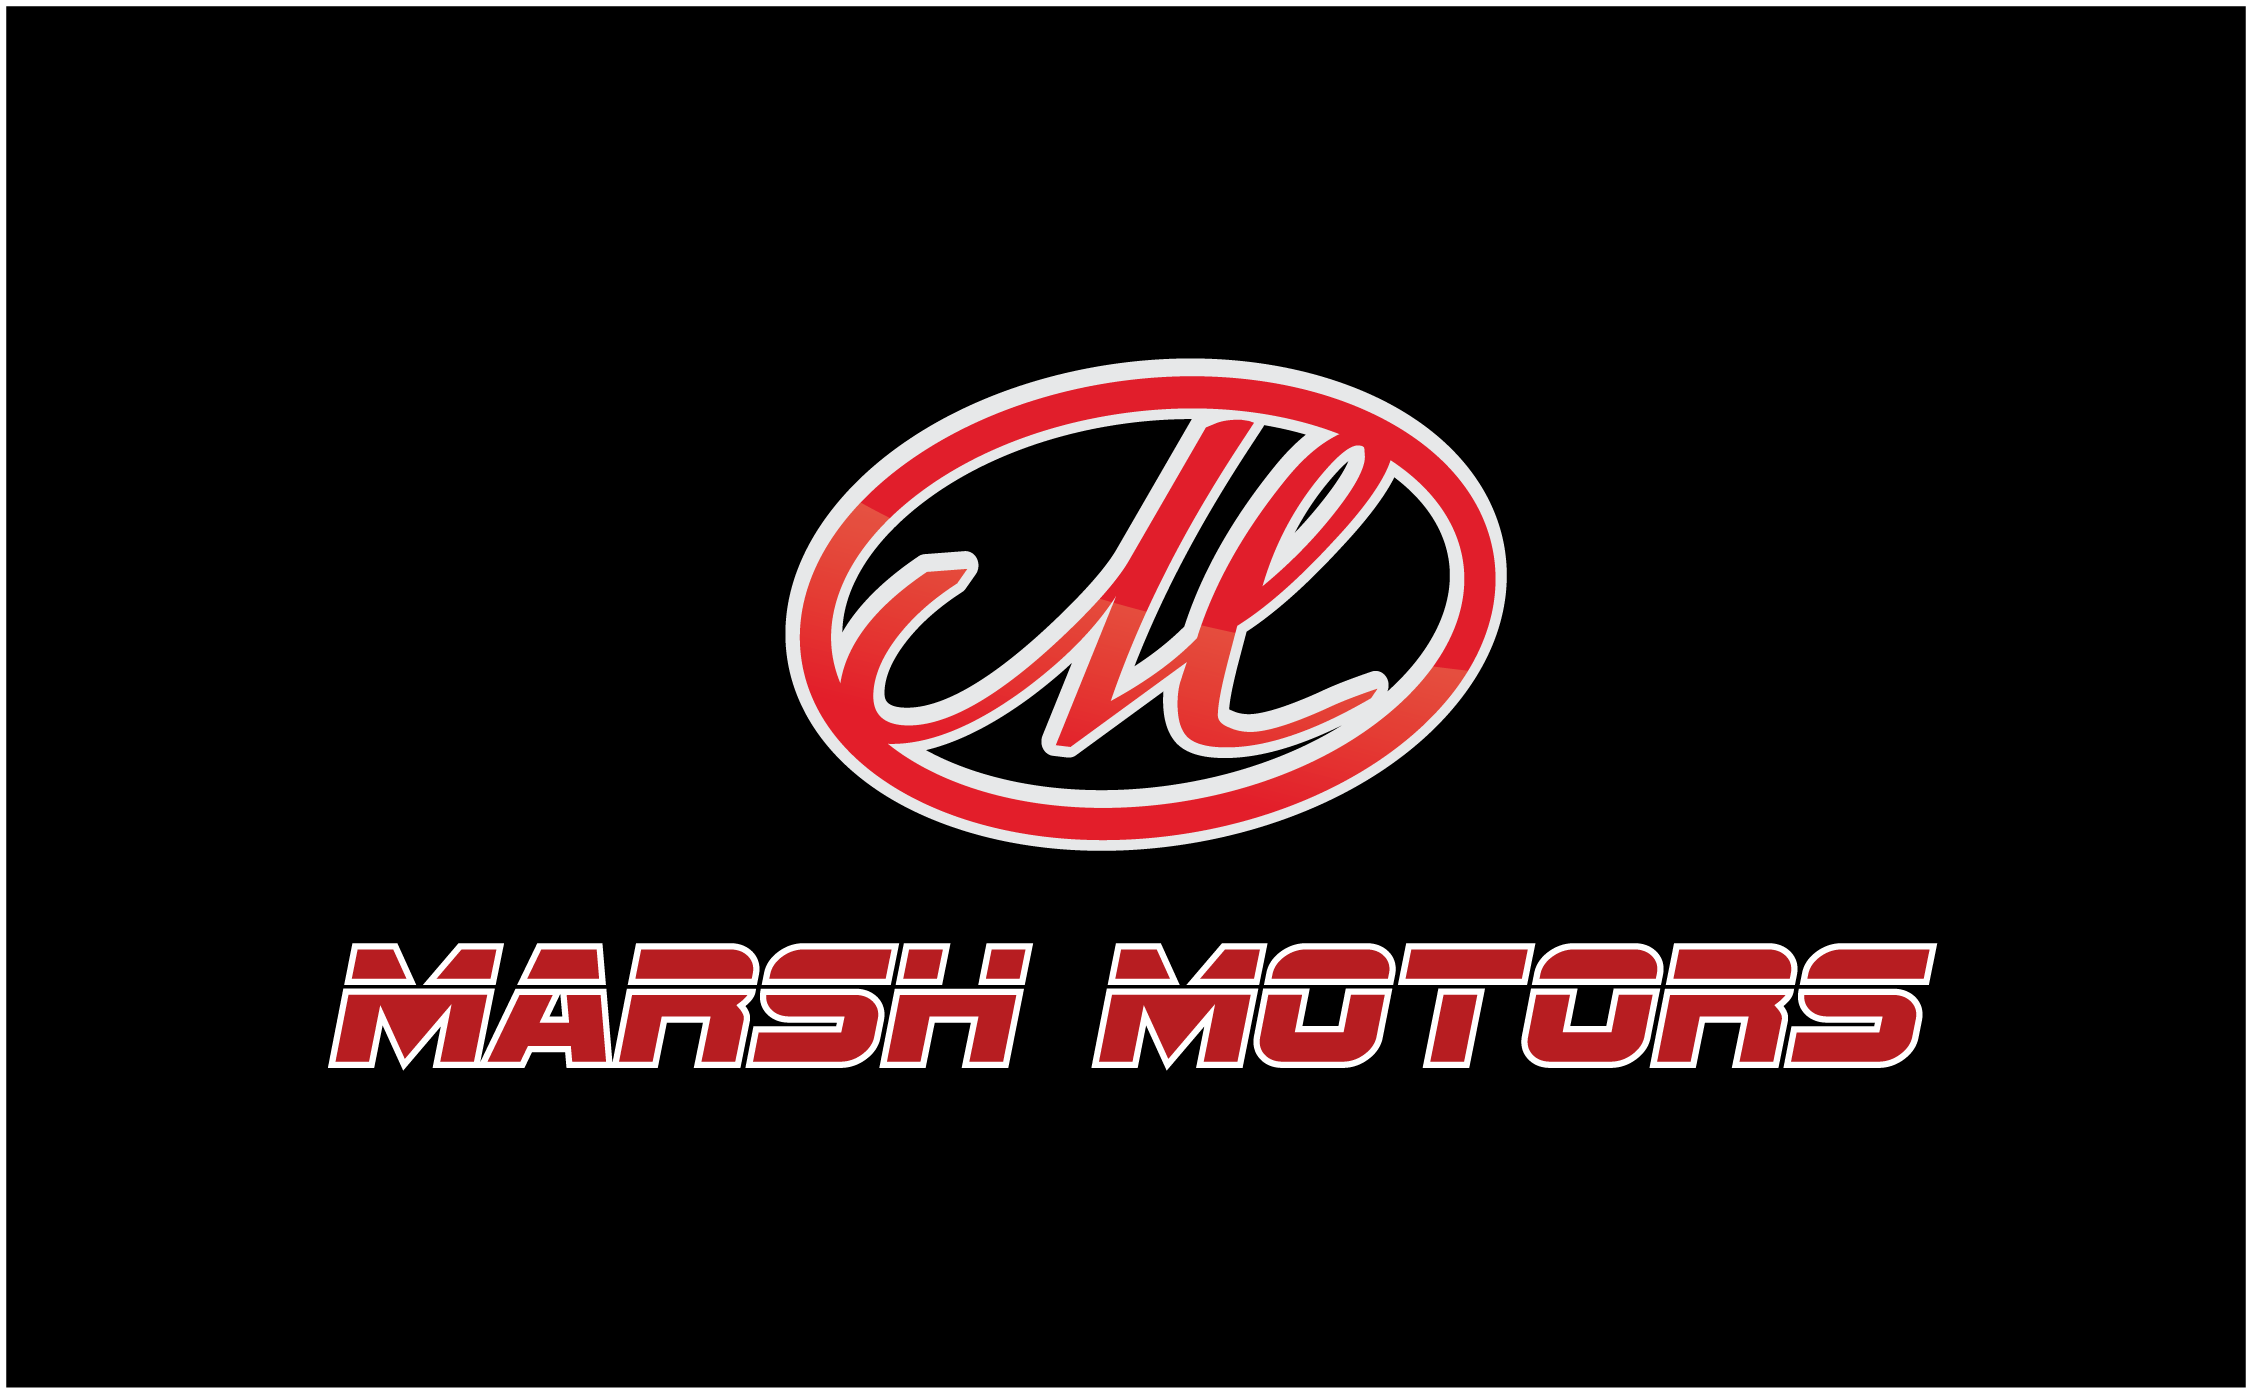 Logo Design by 354studio - Entry No. 60 in the Logo Design Contest Marsh Motors Chrysler Logo Design.